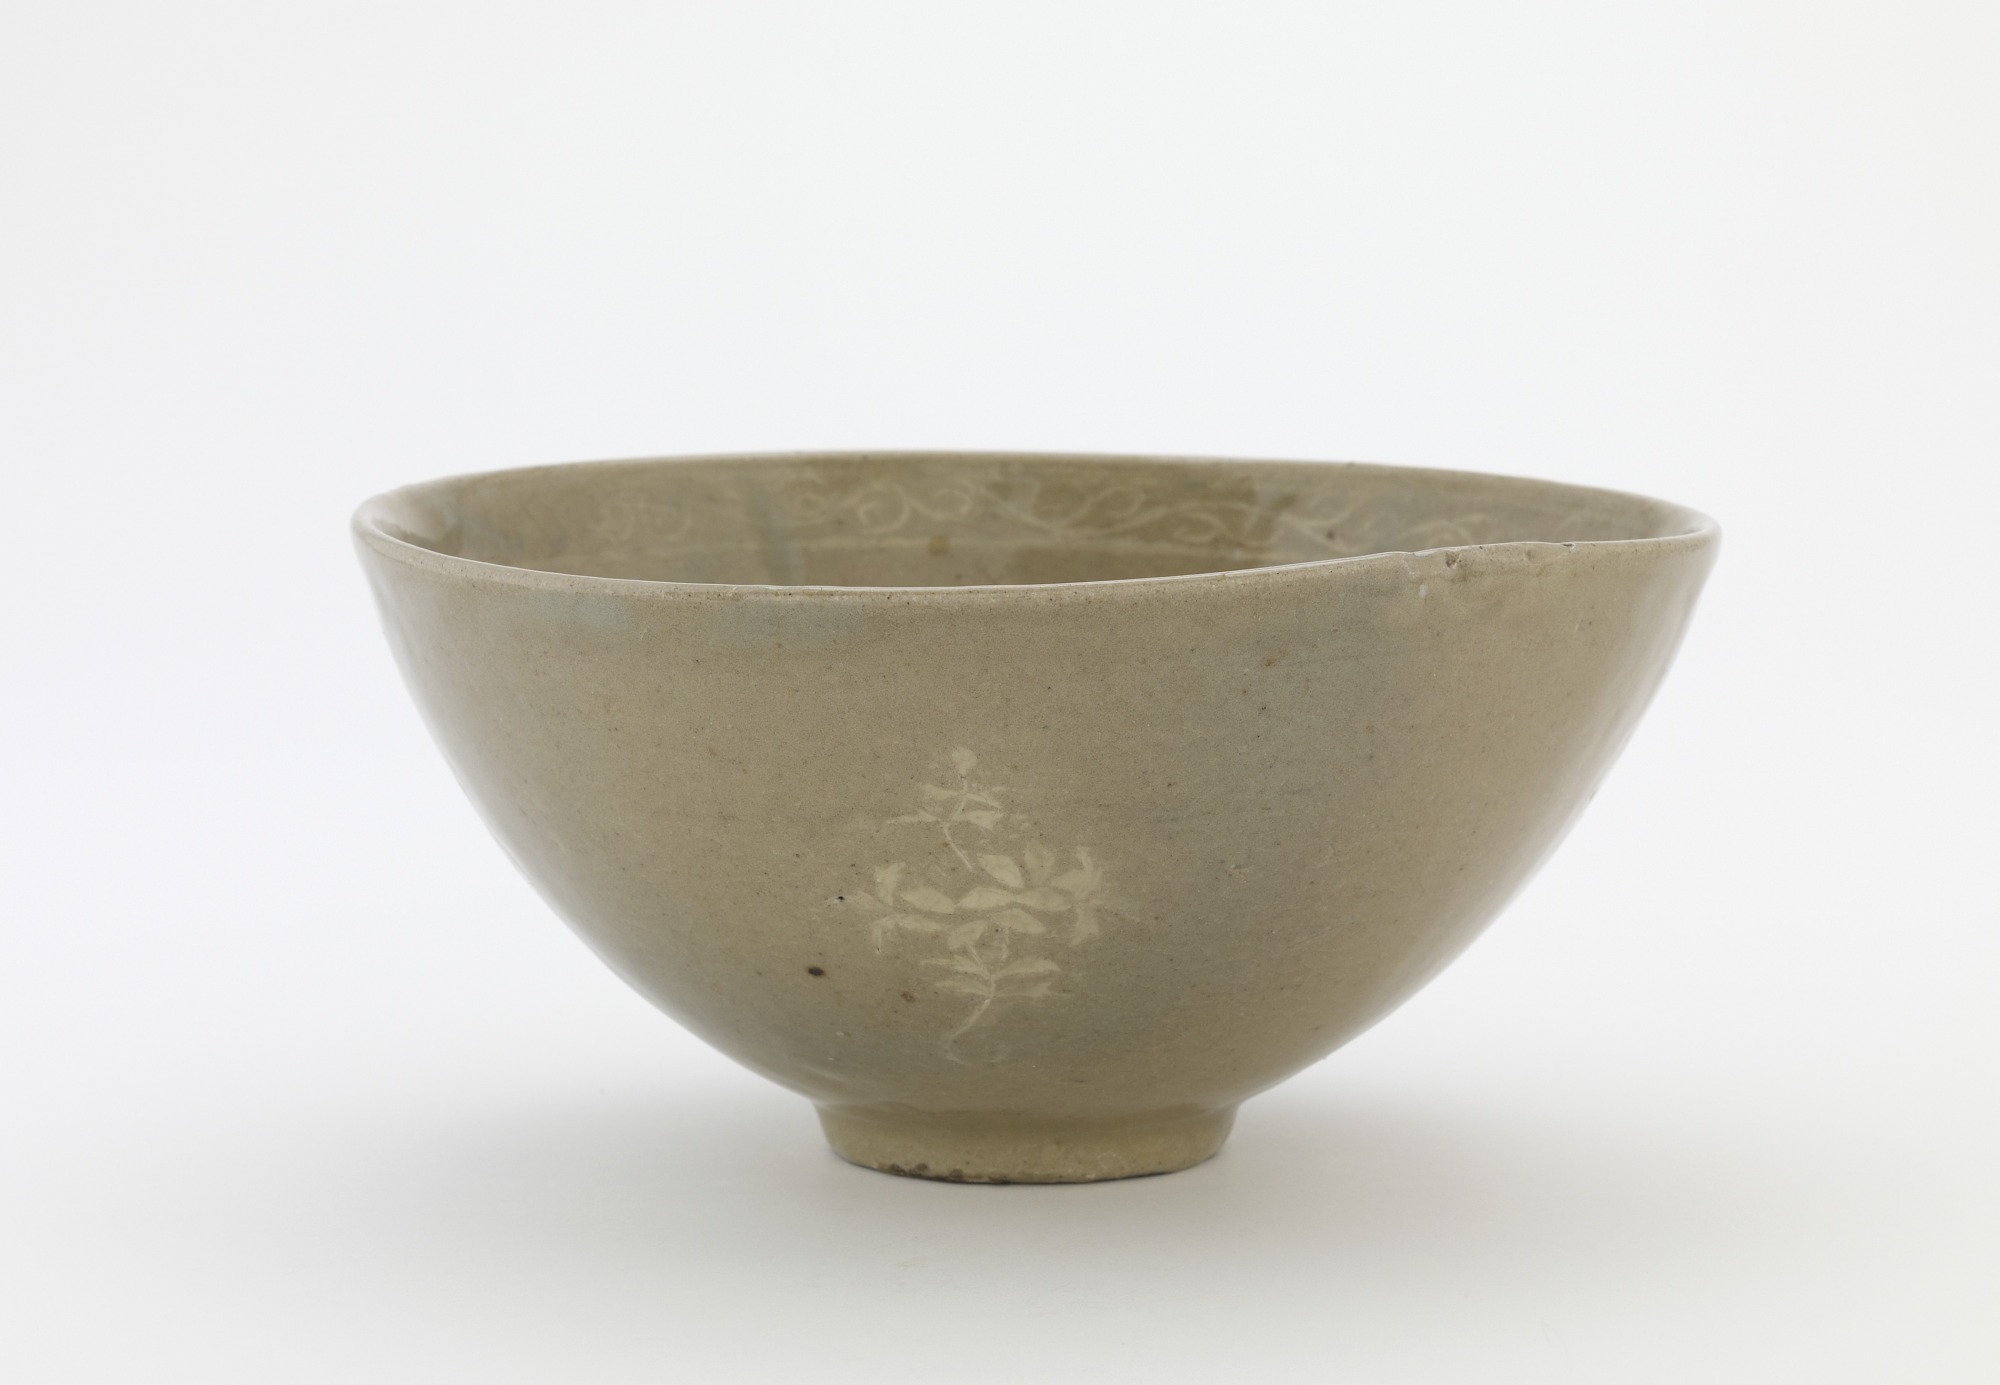 Bowl imitating historical Korean models, profile